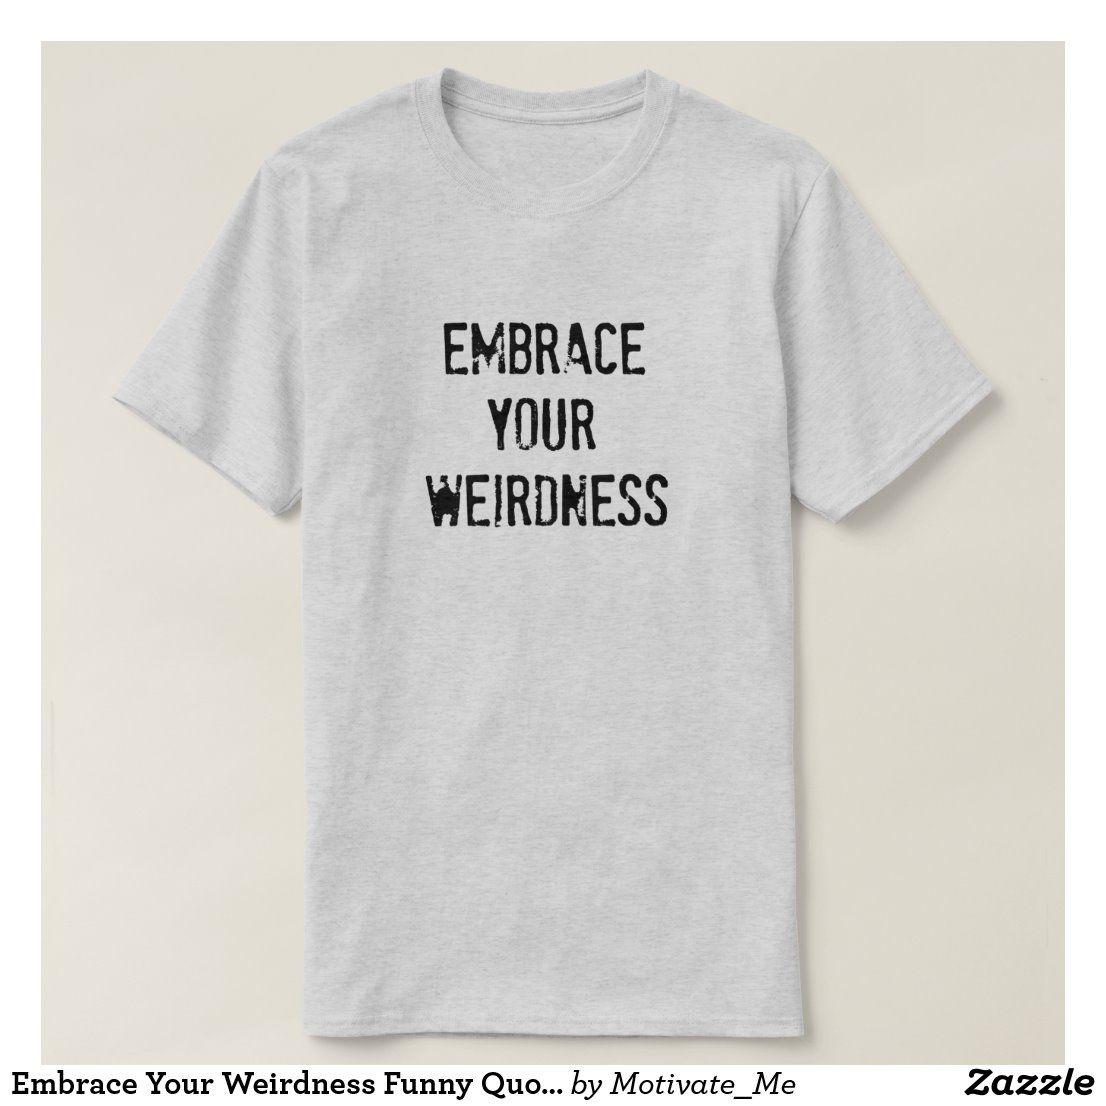 Embrace Your Weirdness Funny Quote T-Shirt   Zazzle.com